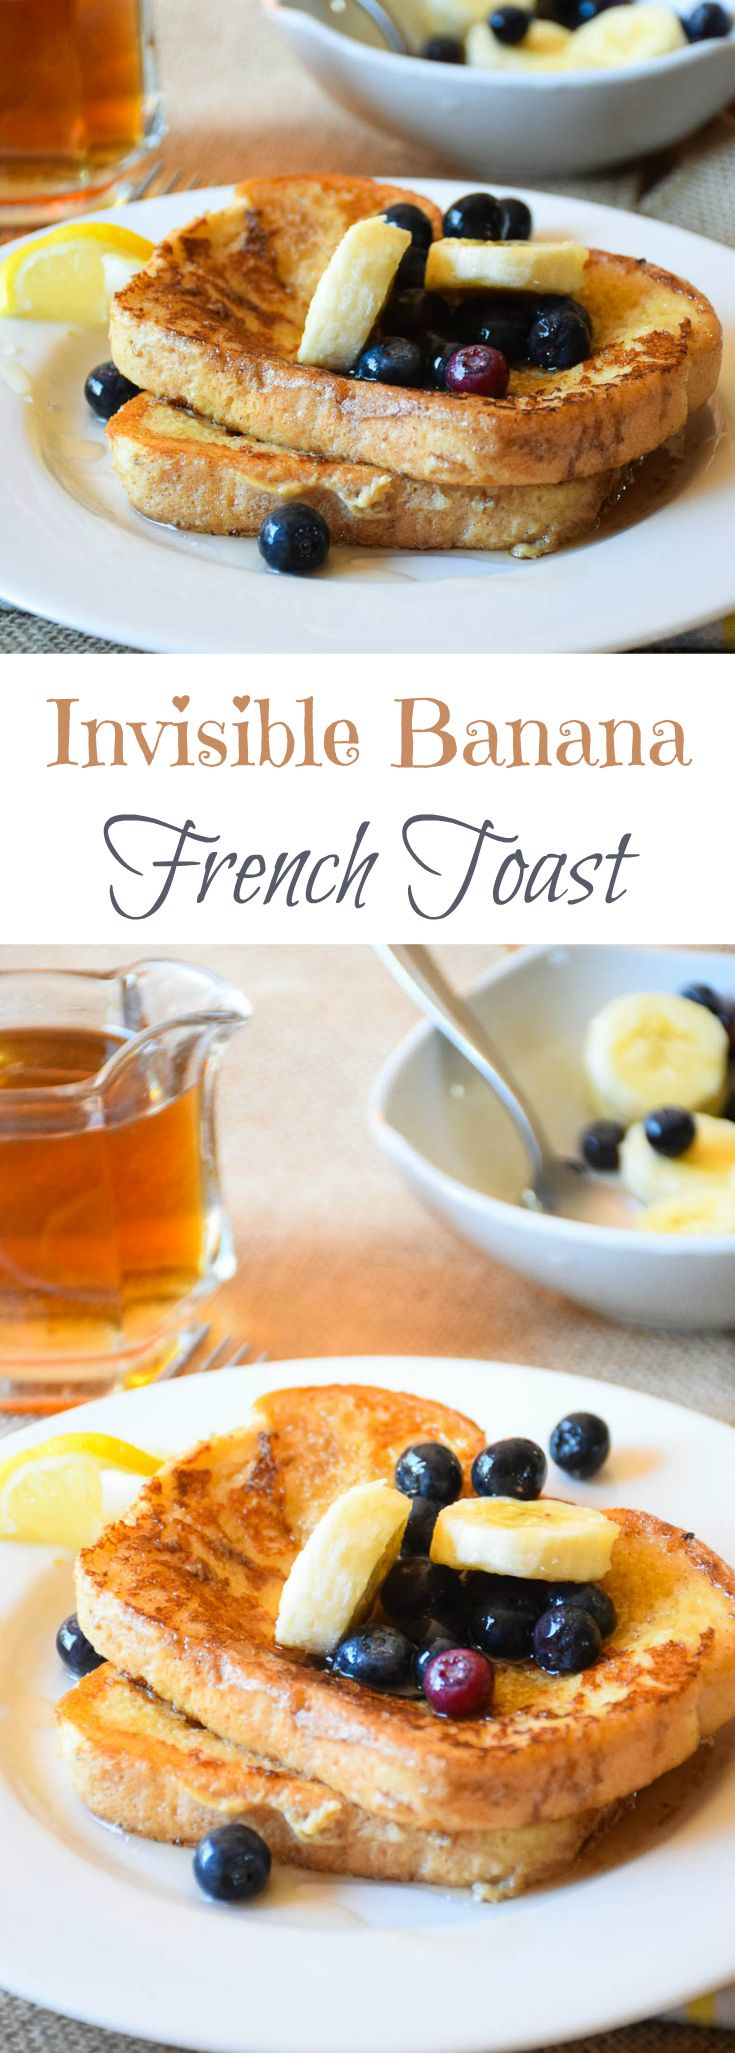 What is Invisible Banana French Toast? It is a french toast batter made with bananas in the blender and it gives an amazing banana flavor to your kids morning meal! They will love the fun you can have in making this recipe as well as the name!